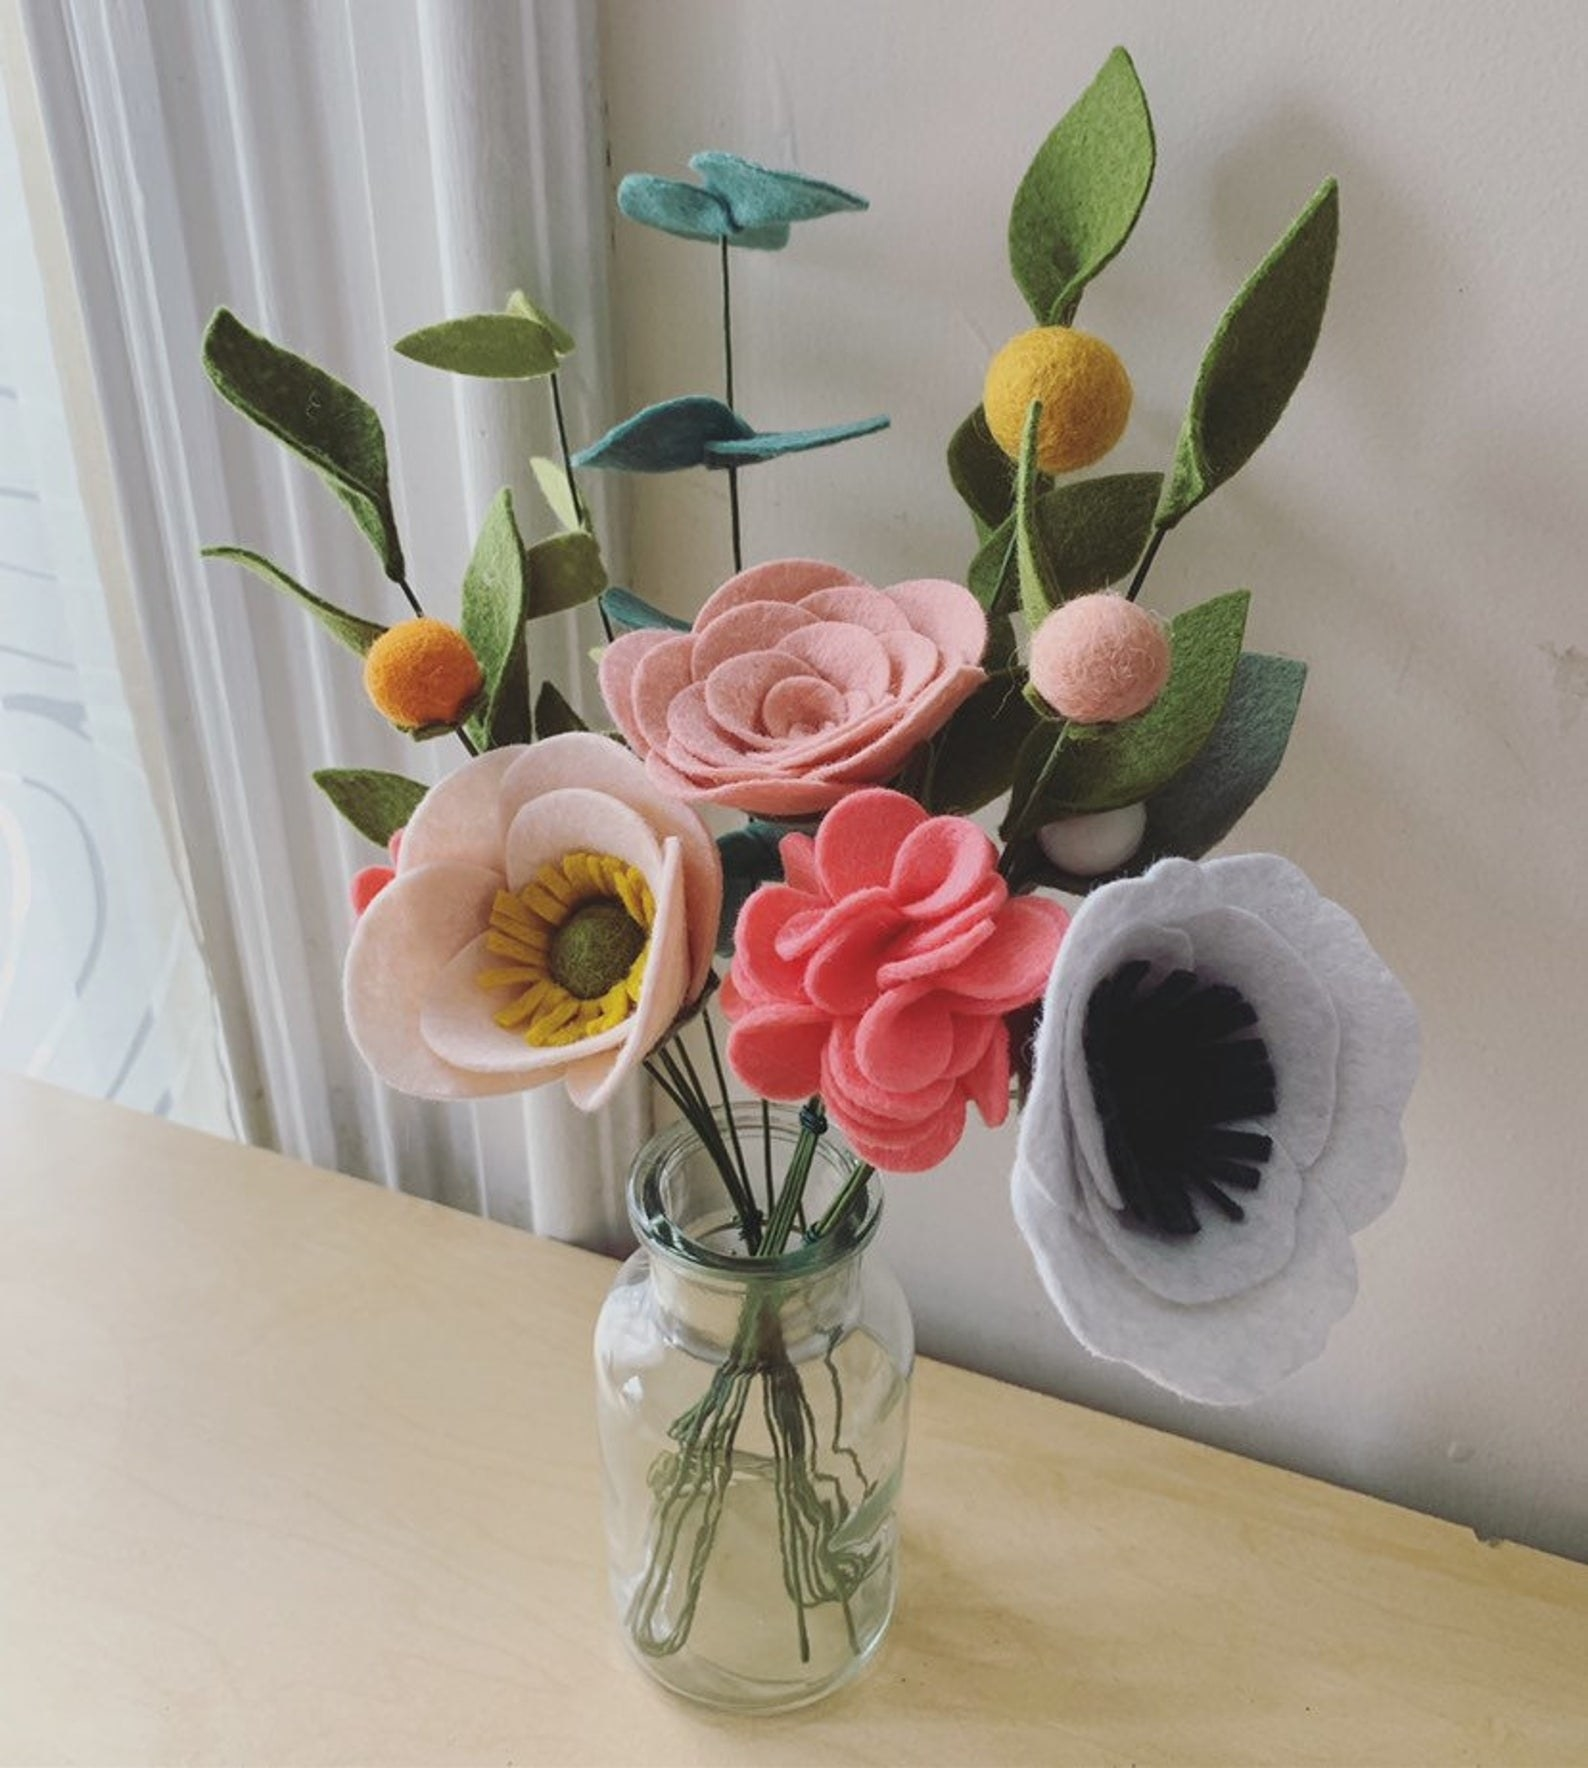 bouquet of colorful felt flowers in a clear jar-like vase